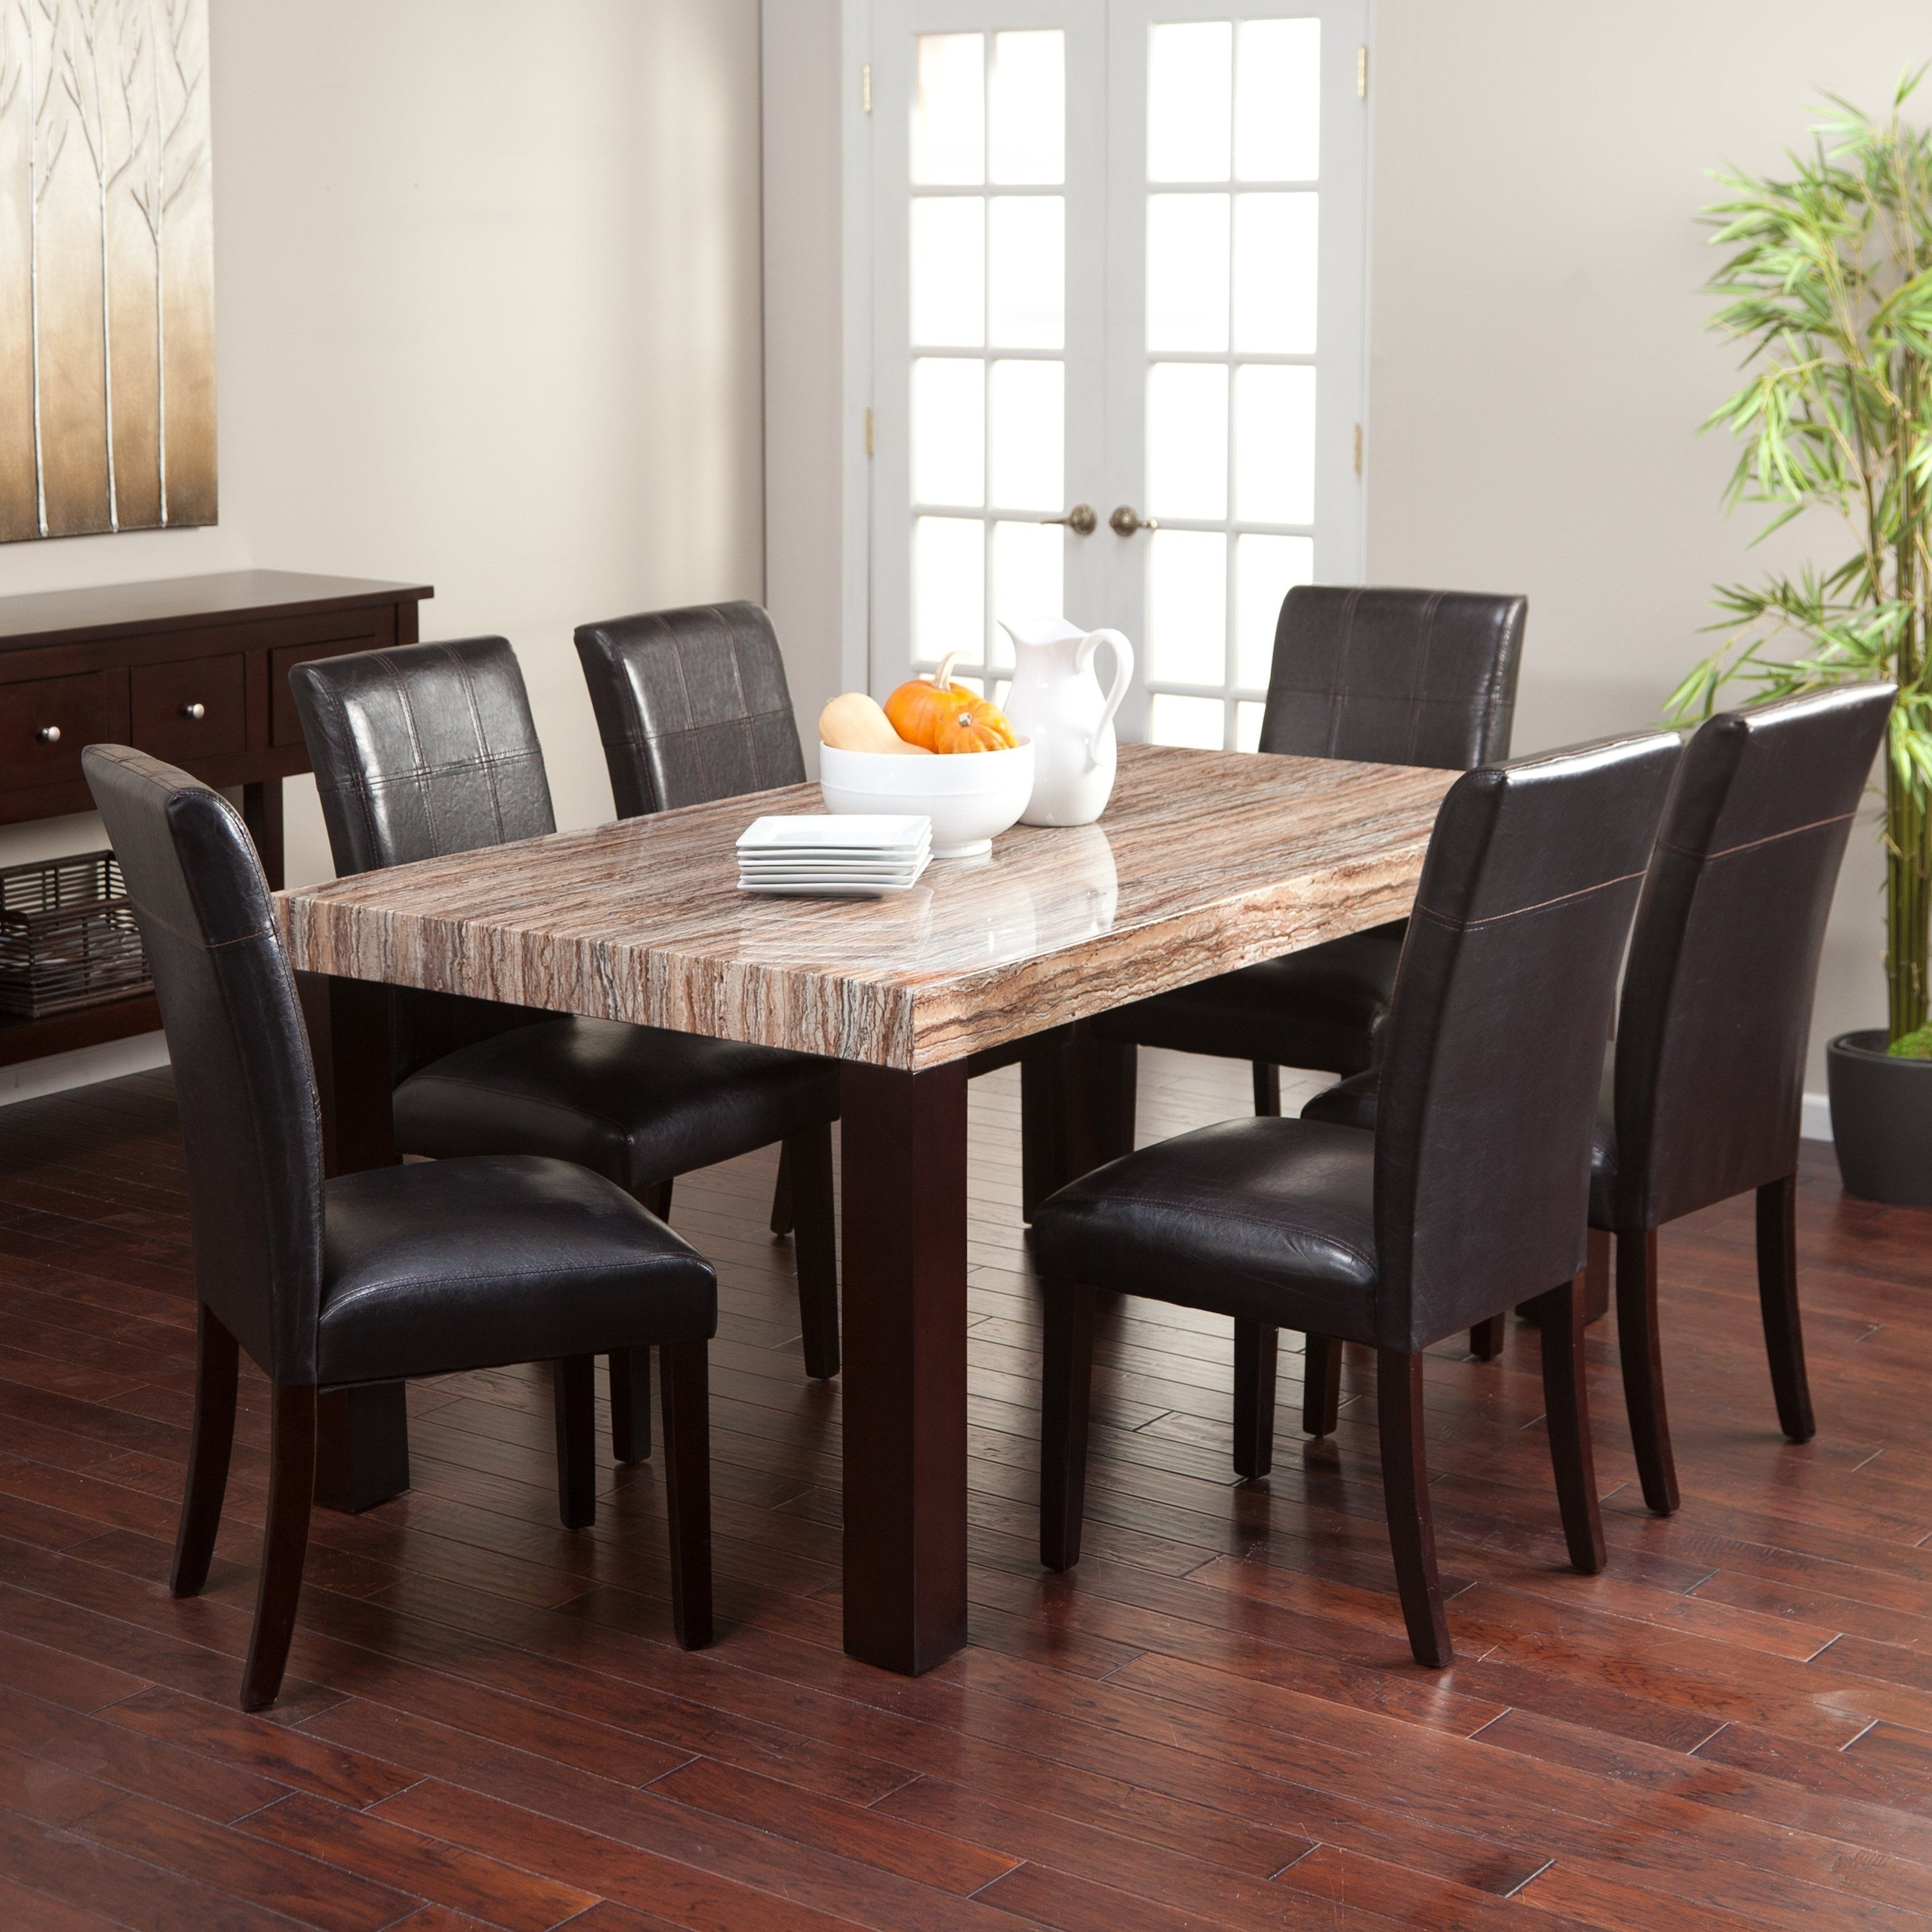 Beautiful 7 Piece Dining Room Table Set with Black Leather Chairs and Faux Marble Top Dinner & Modern Marble Dining Table - Foter